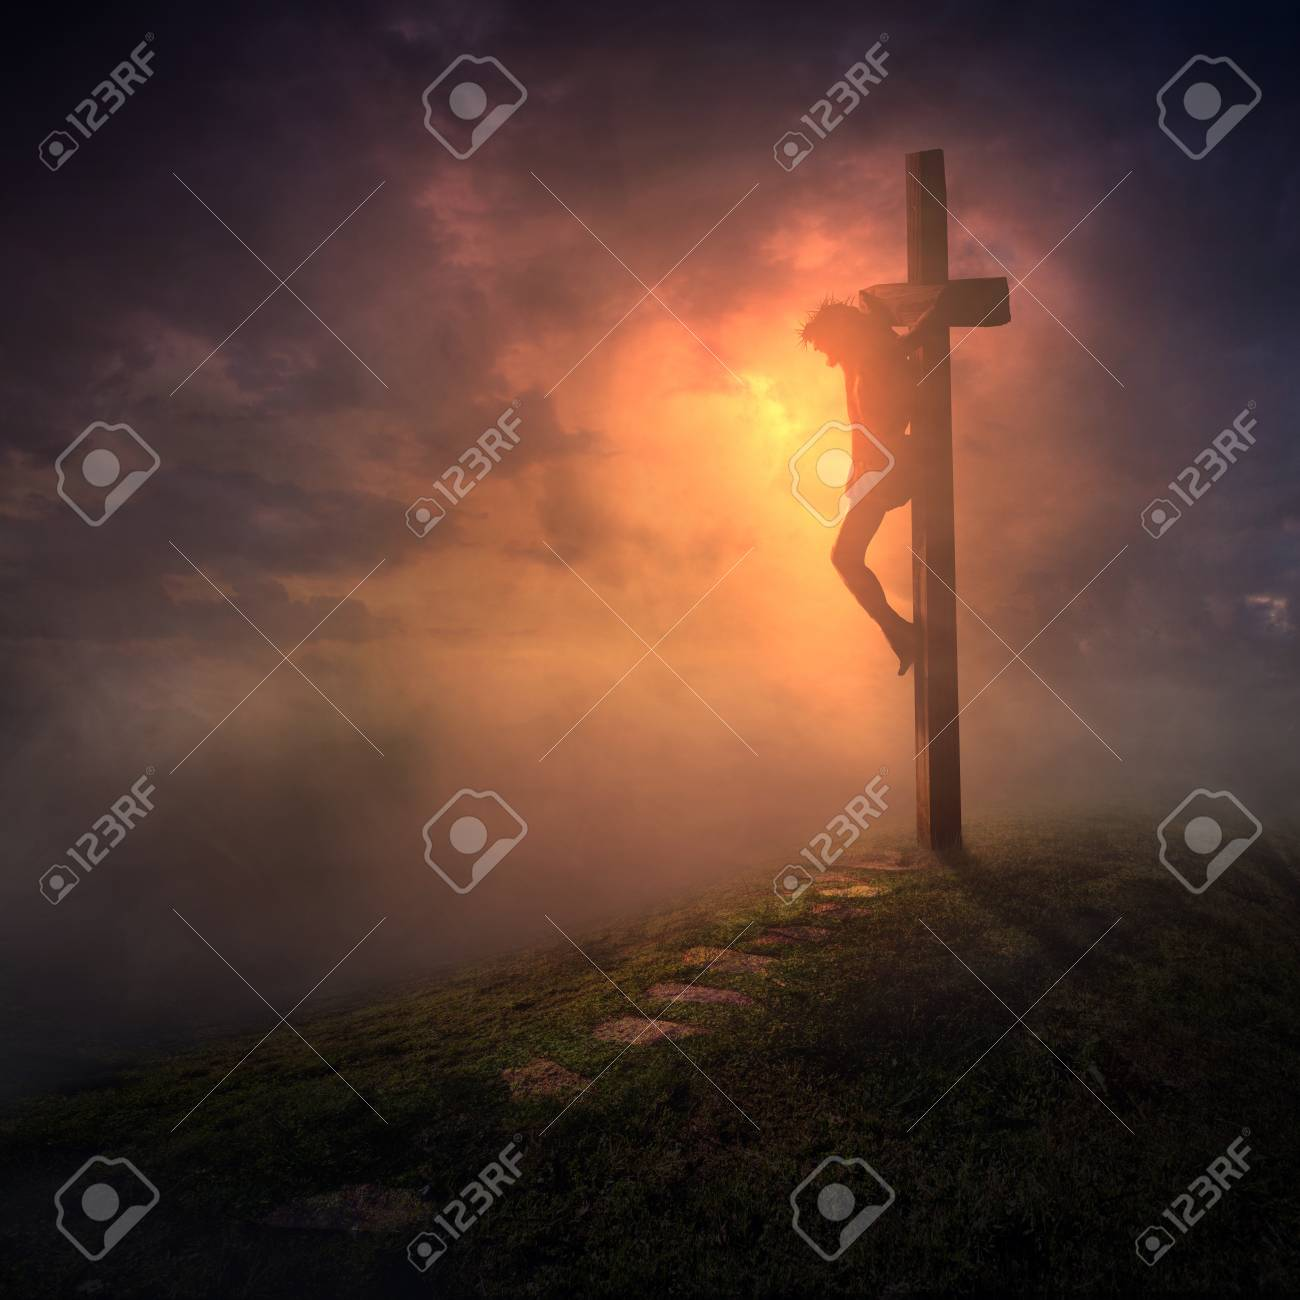 Jesus hanging on the cross with the skies getting dark - 81659699